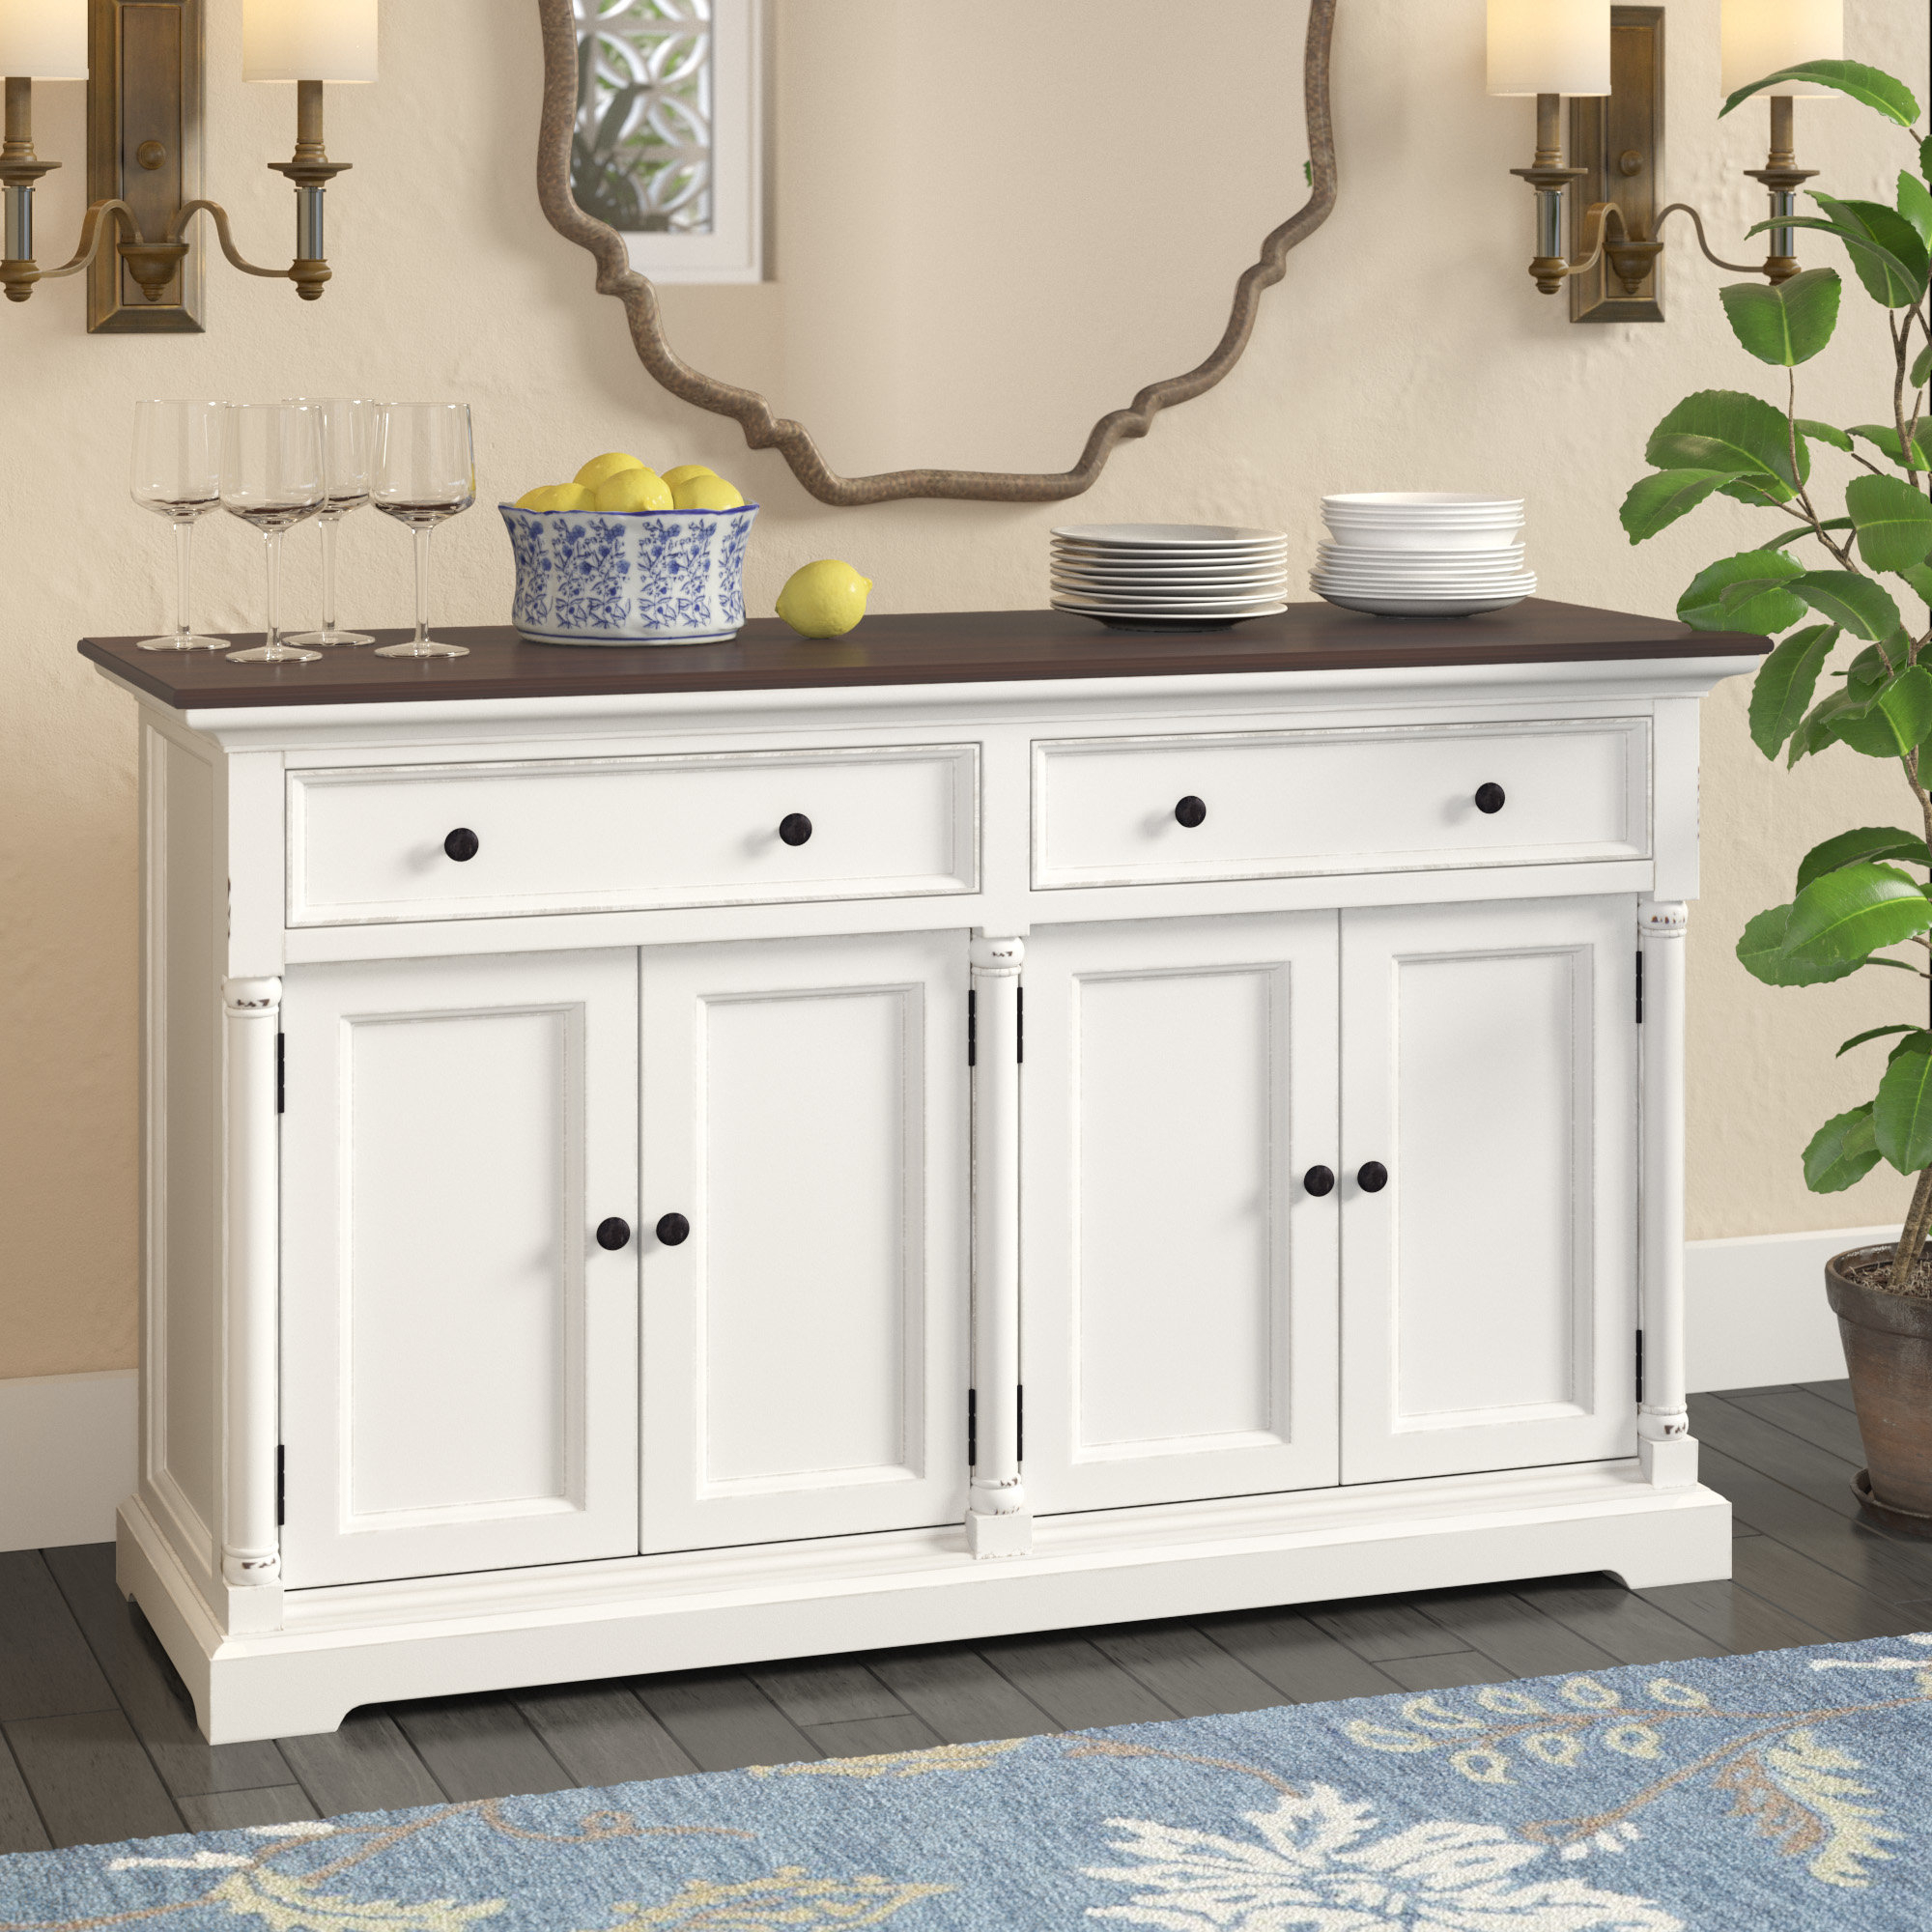 Farmhouse & Rustic Darby Home Co Sideboards & Buffets With Regard To Phyllis Sideboards (View 14 of 20)